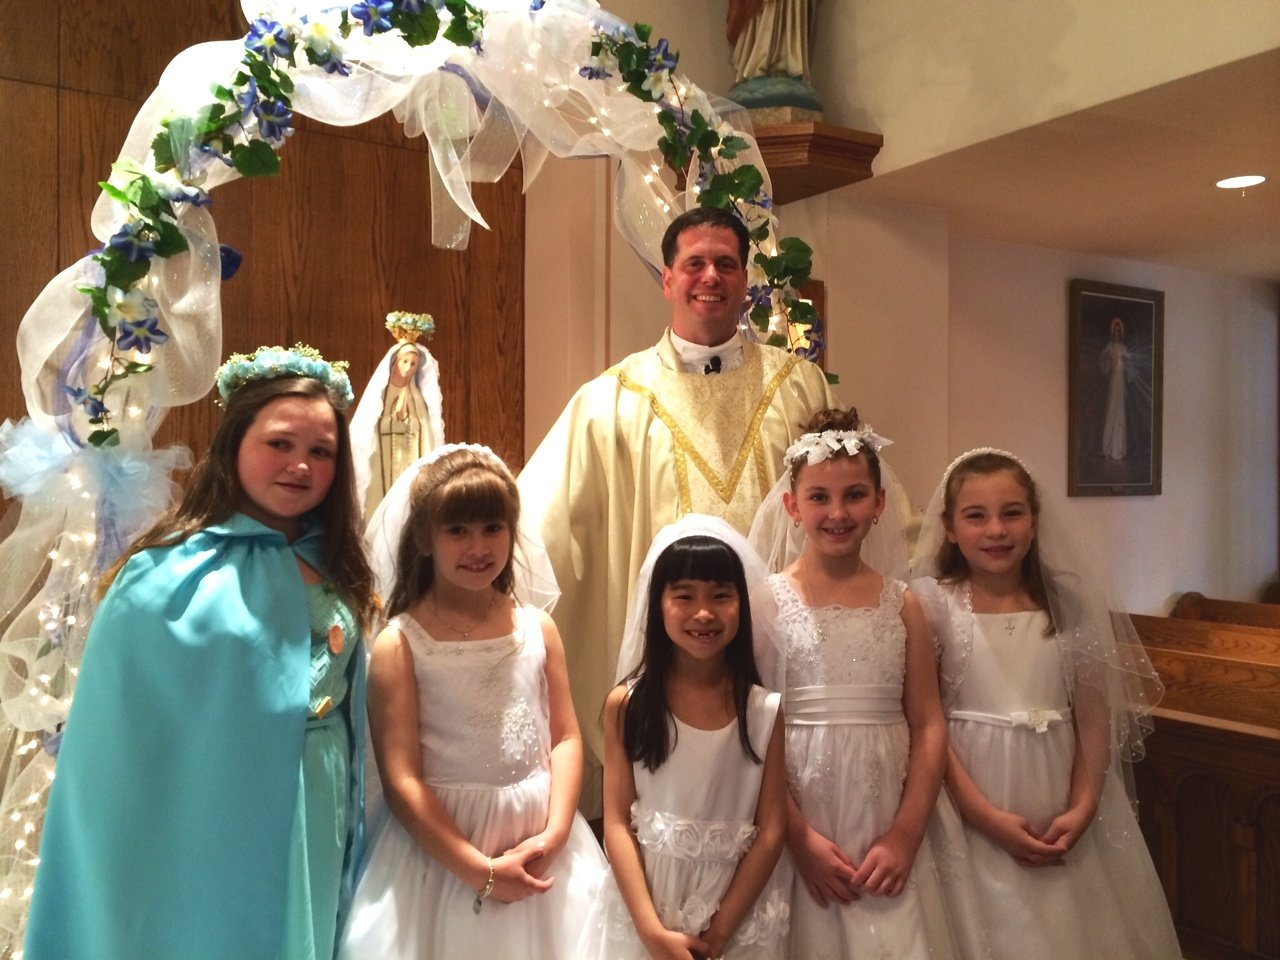 May crowning 2014 two